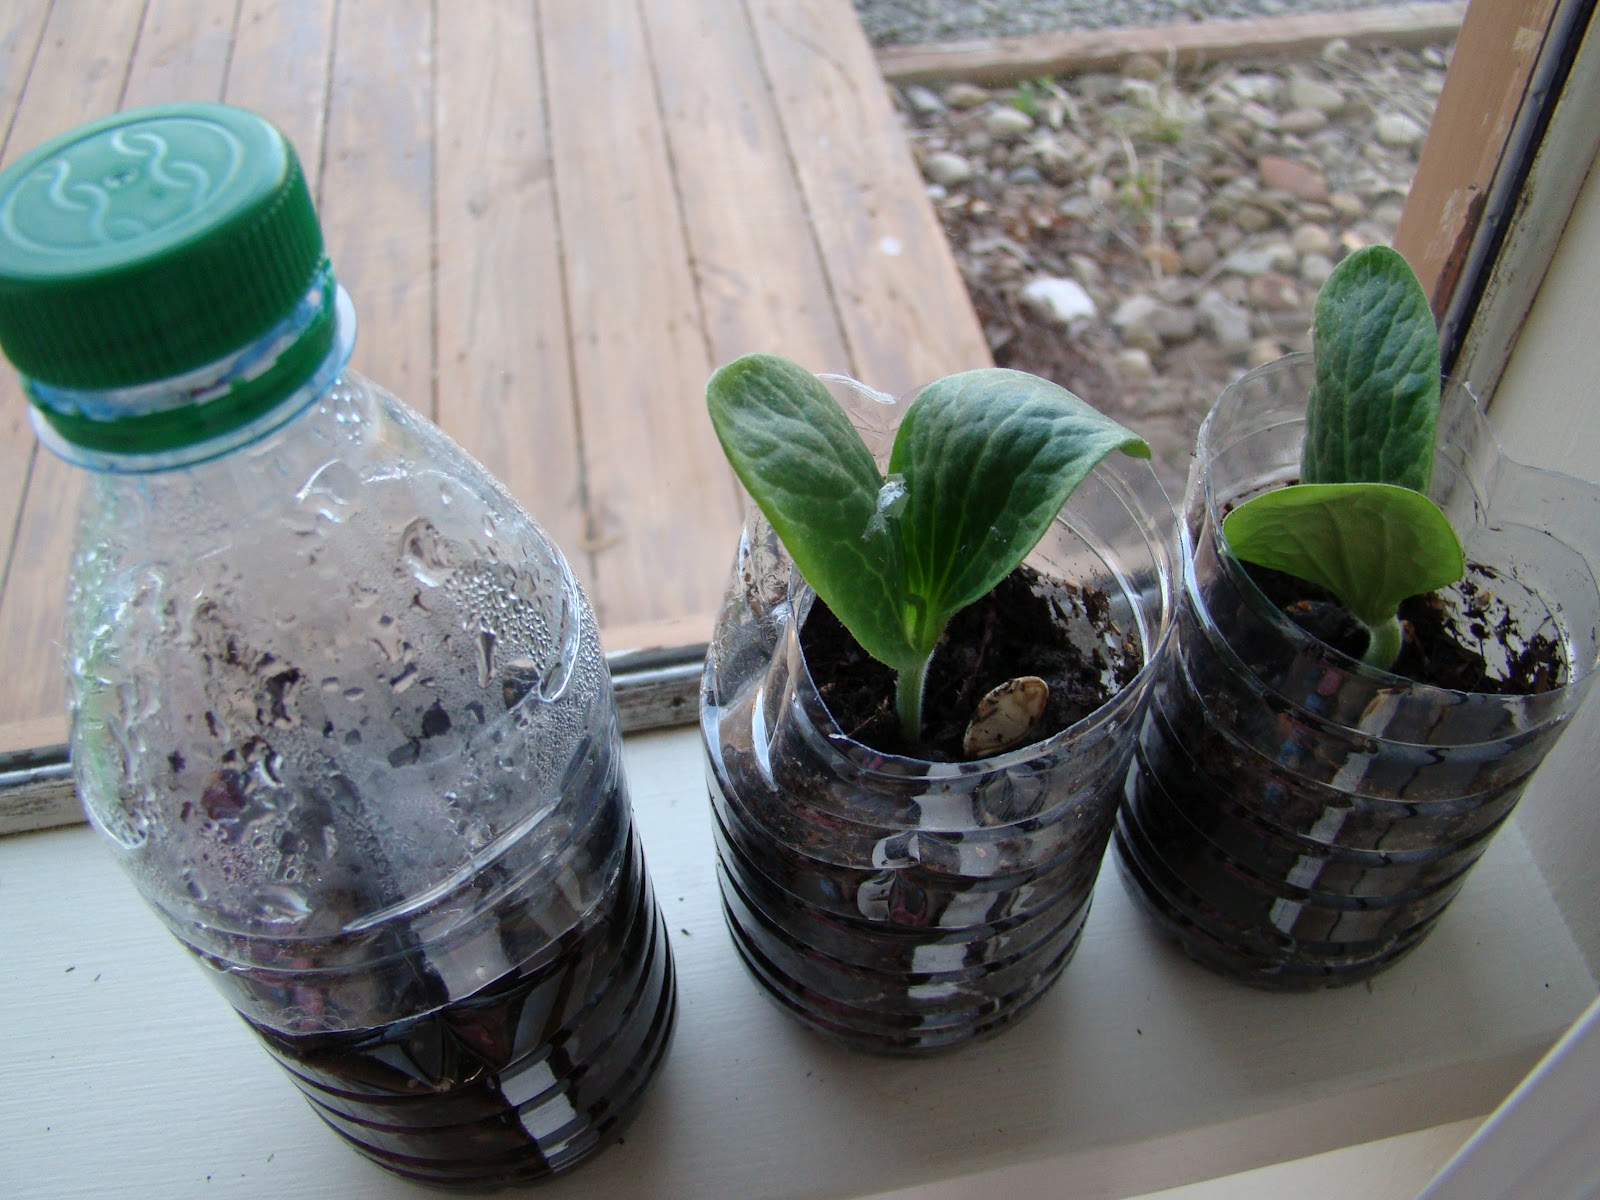 Summer squash in recycled water bottles